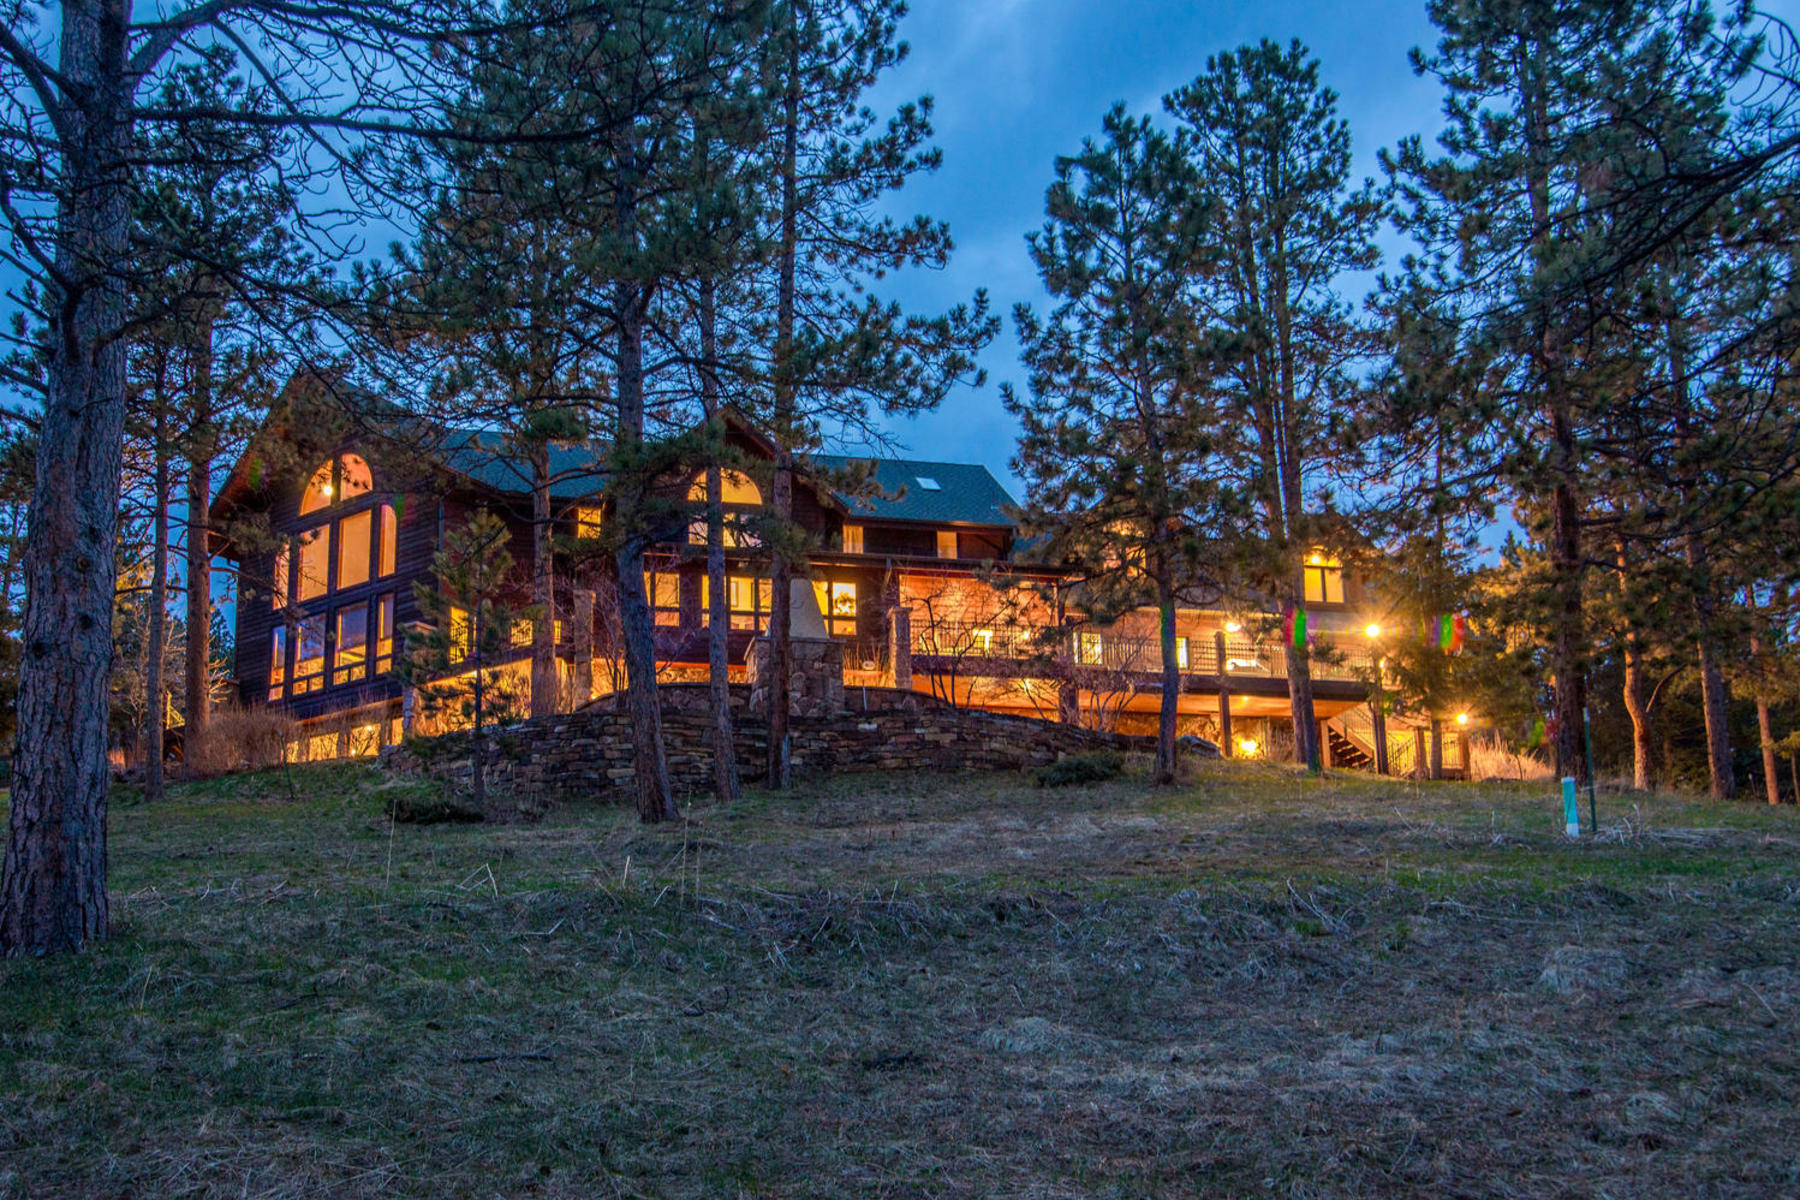 Single Family Homes for Sale at Majestic Estate Nestled on 42.42 Acres 28775 Cragmont Drive Evergreen, Colorado 80439 United States